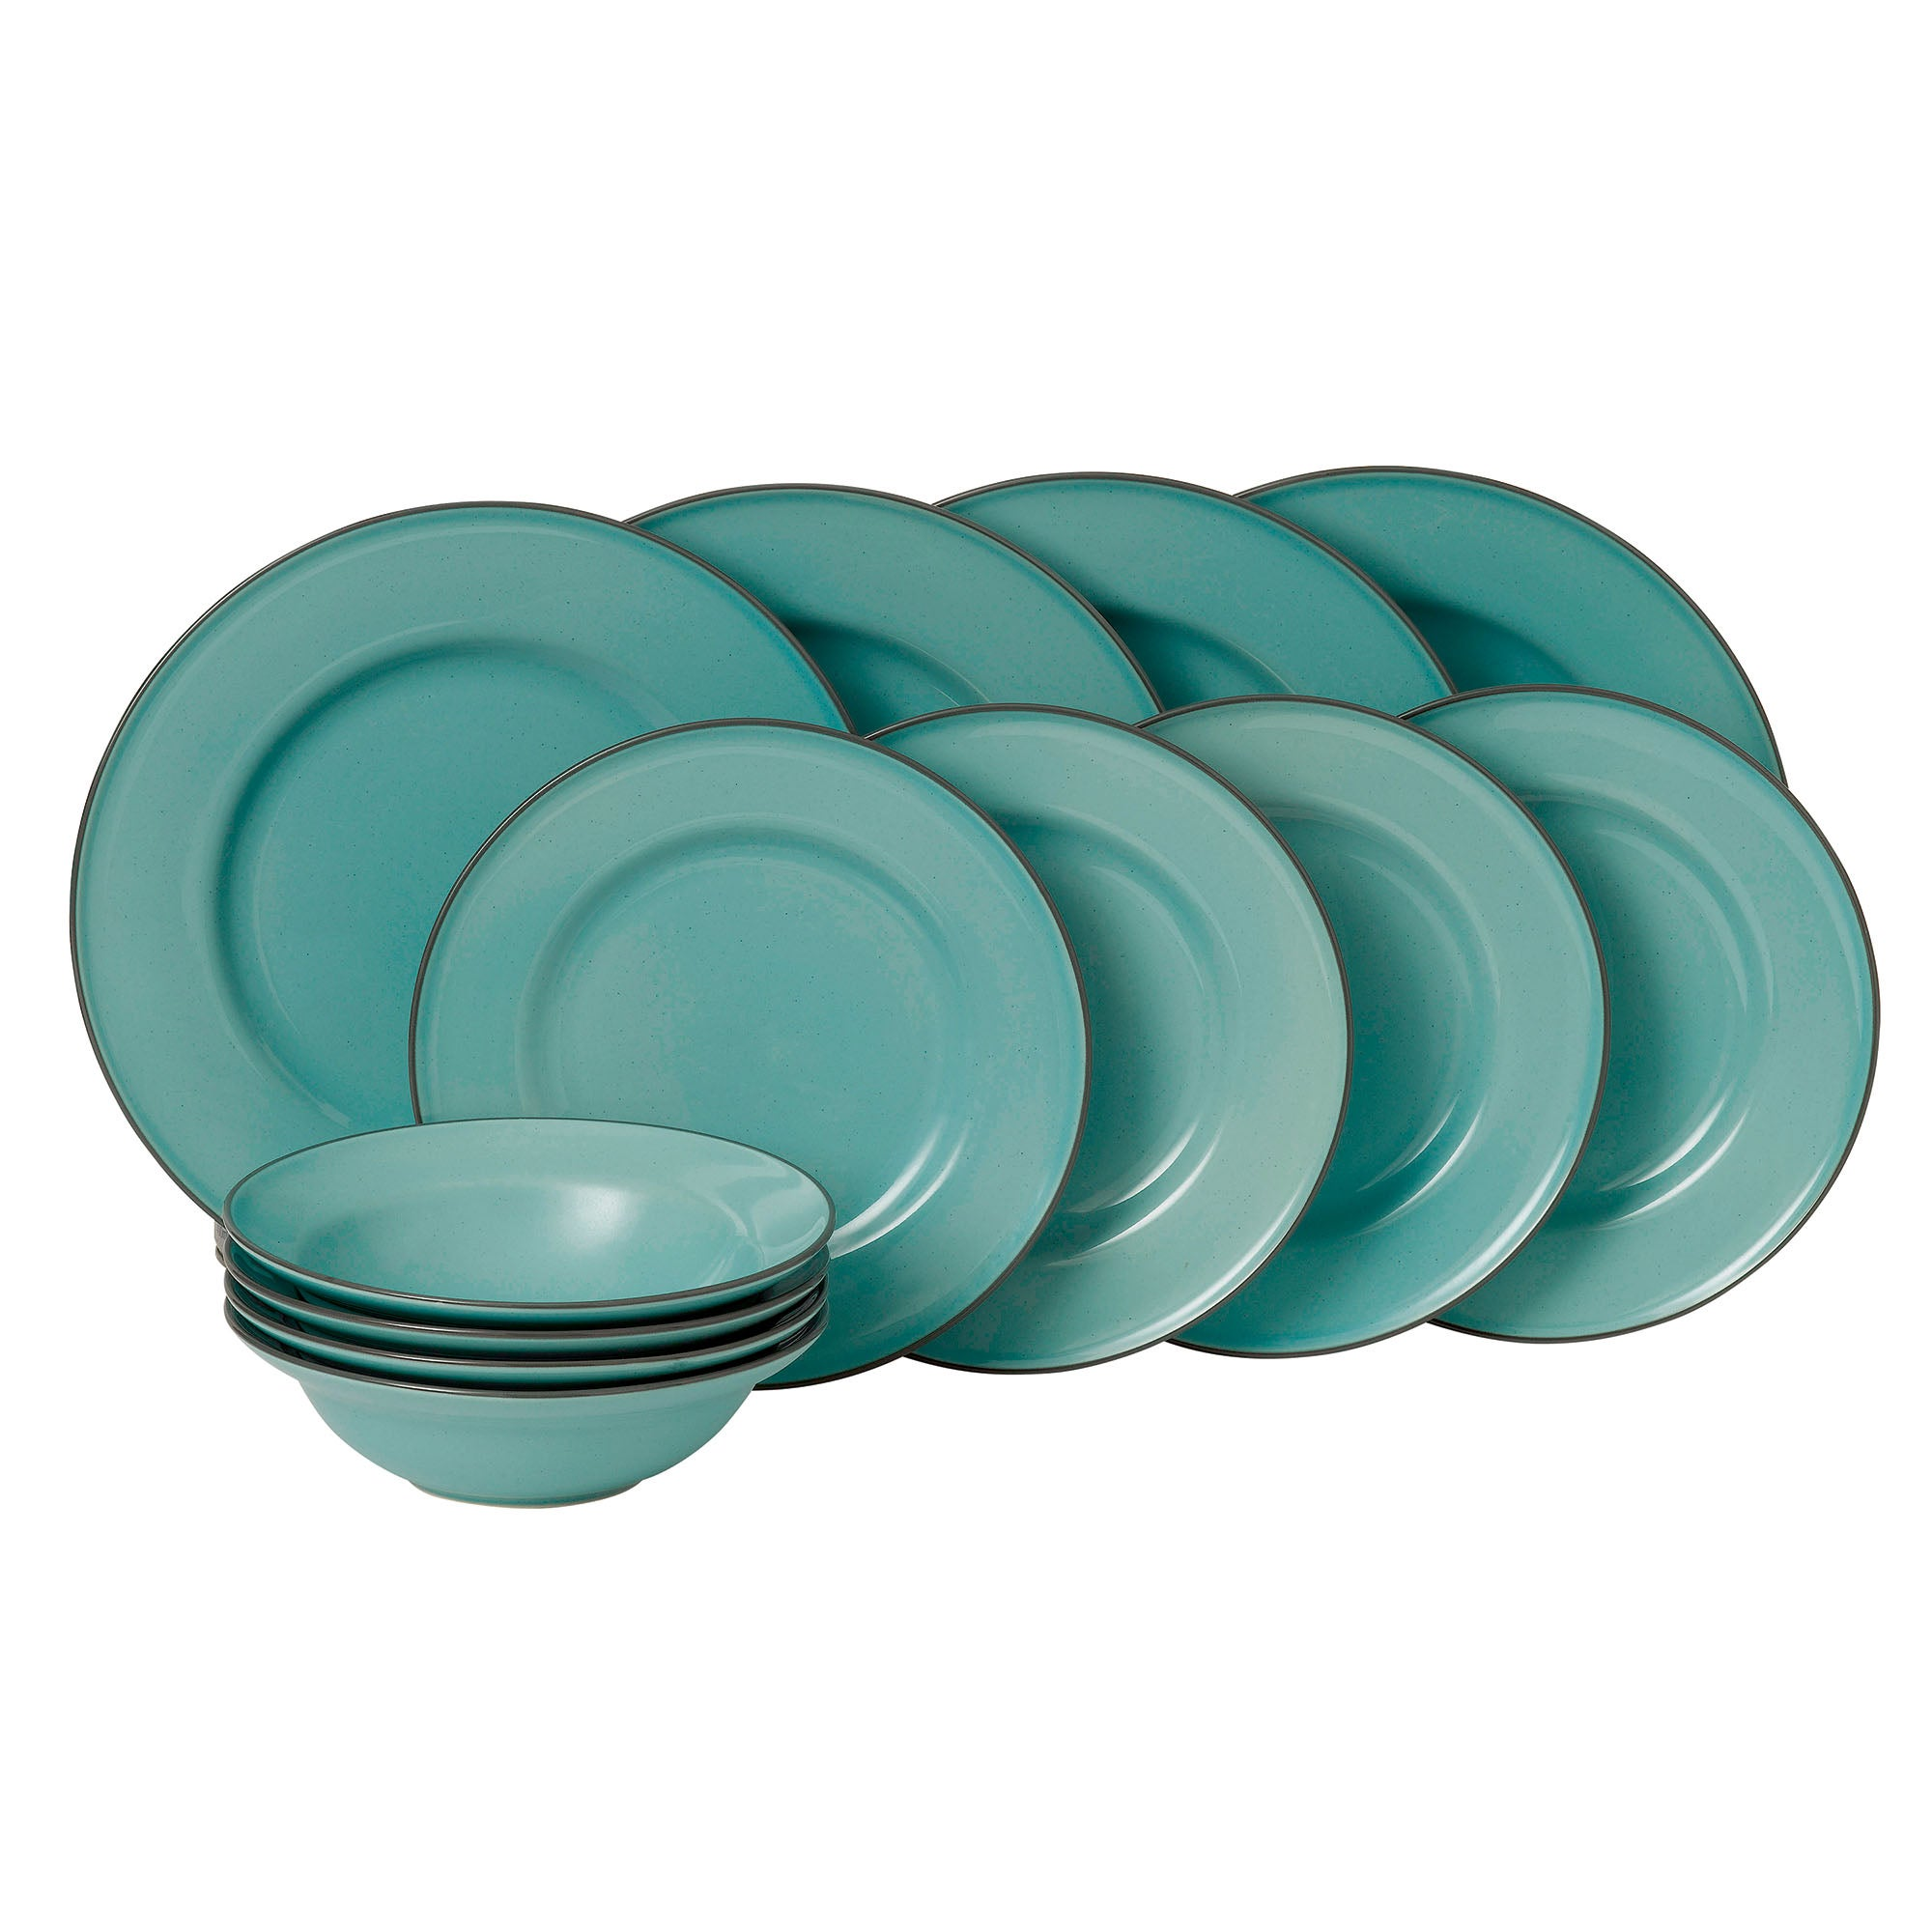 Image of Gordon Ramsay Royal Doulton Teal Union Street Cafe 12 Piece Dinner Set Teal (Blue)